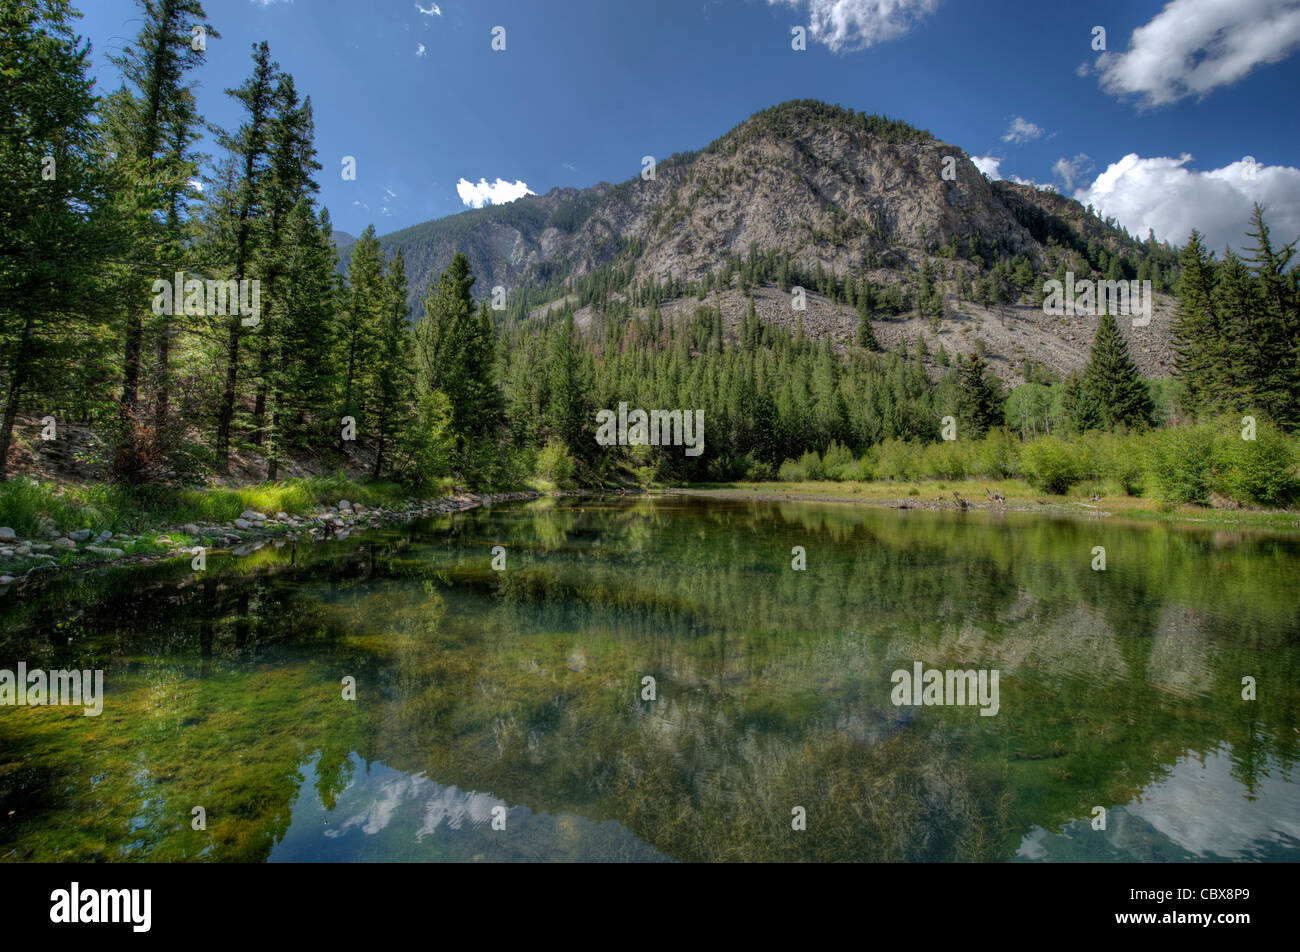 A small, unnamed lake at the 9,000-foot level beside County Road 162 in Chaffee County, Colorado. - Stock Image